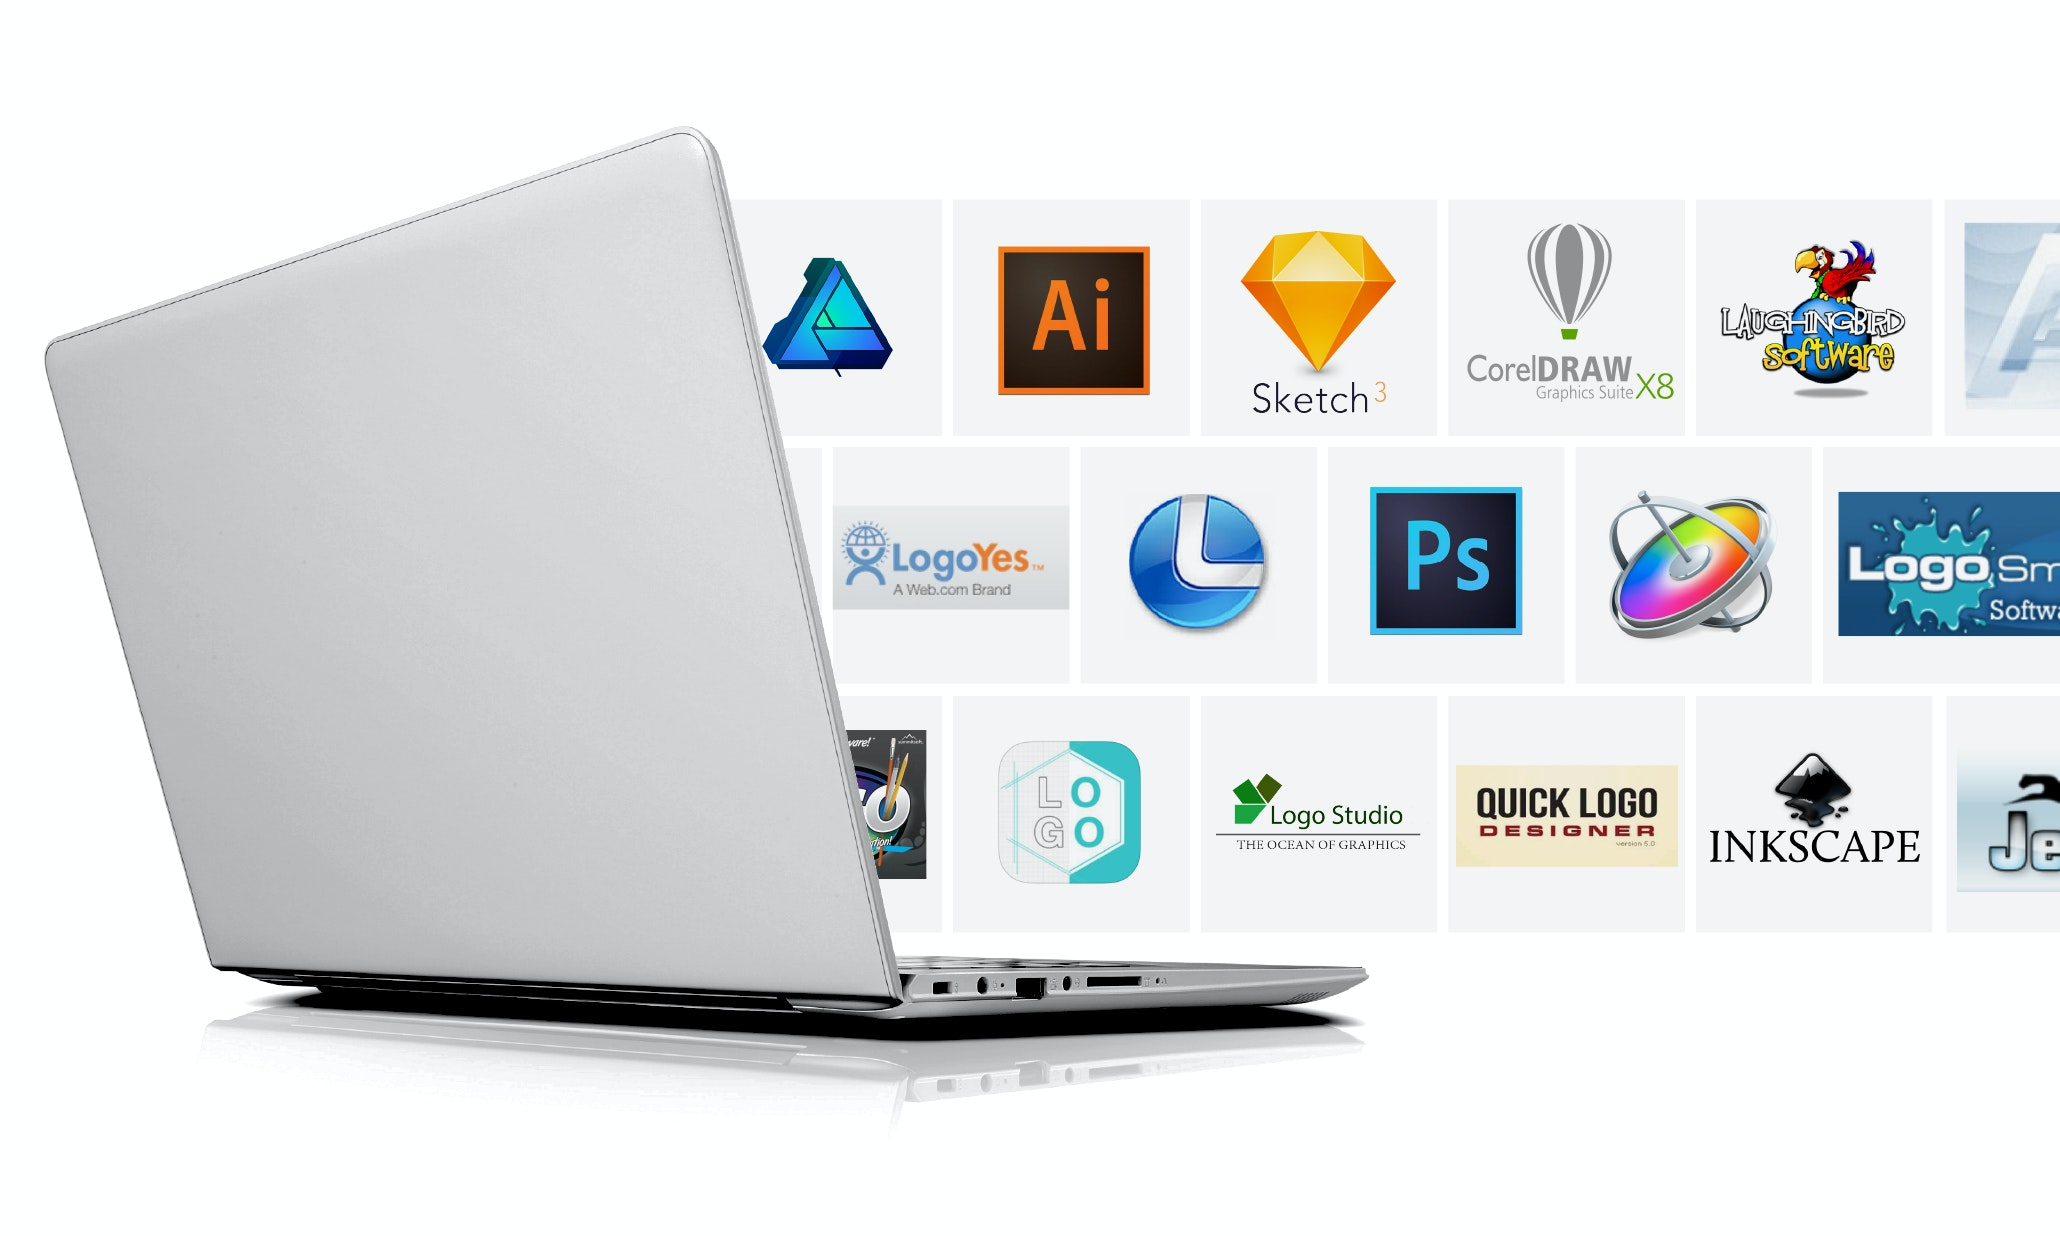 The best logo design software for every skill level